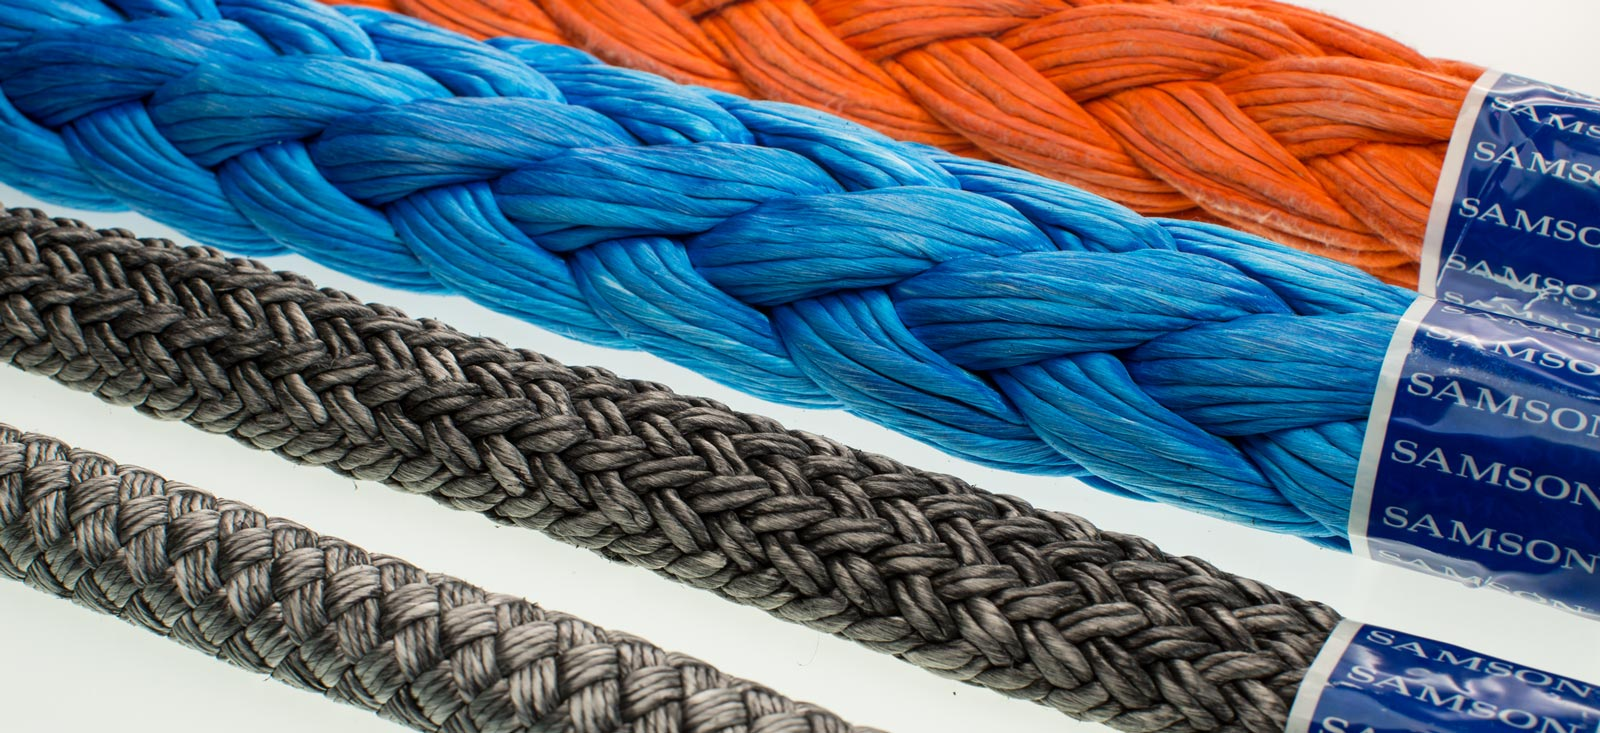 Samson Synthetic Ropes